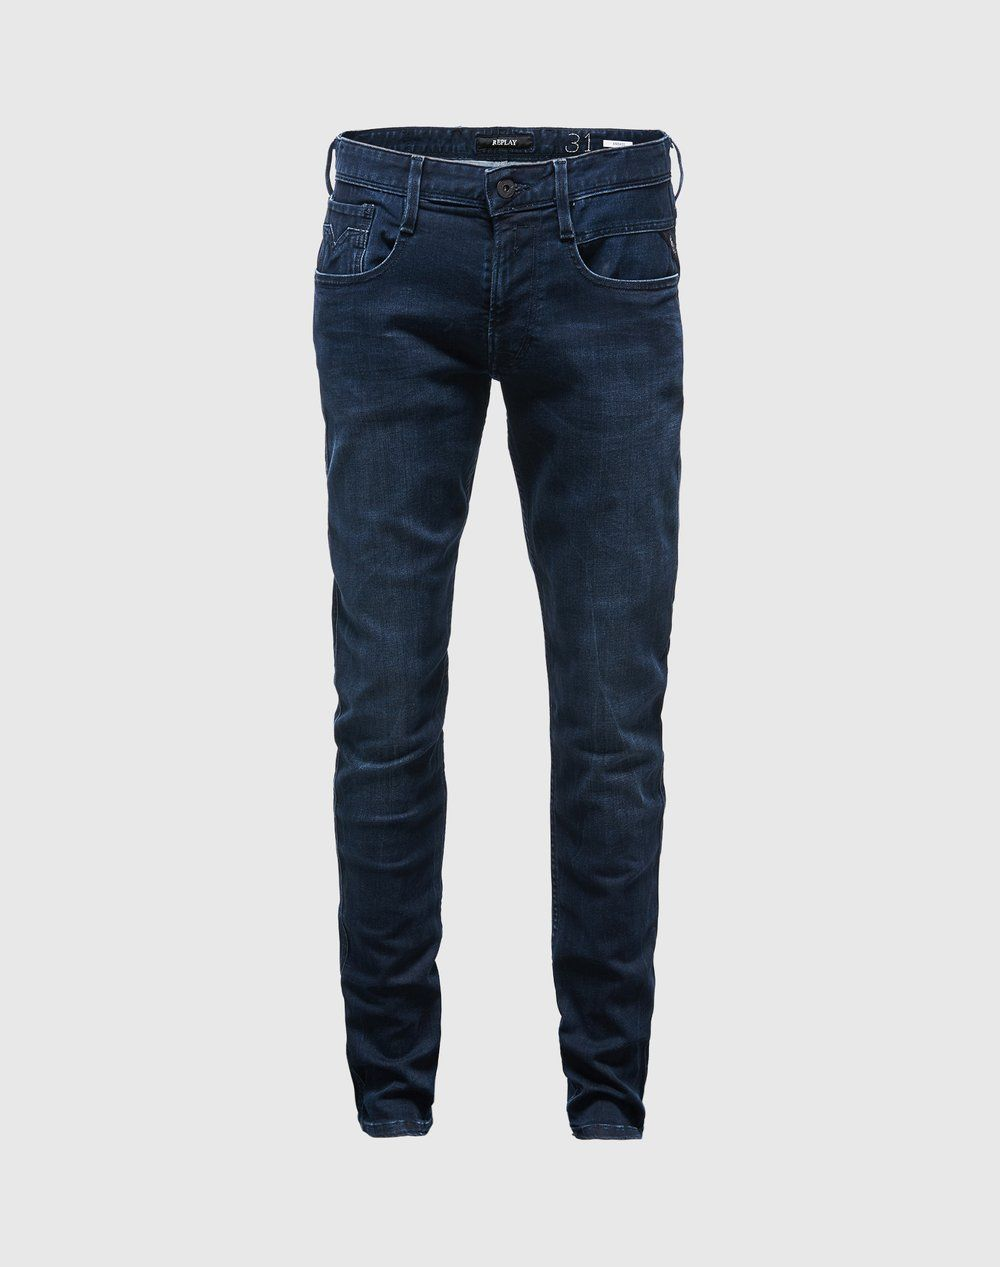 Jeans im Used-Style 'Anbass' von REPLAY - EDITED.de 100€